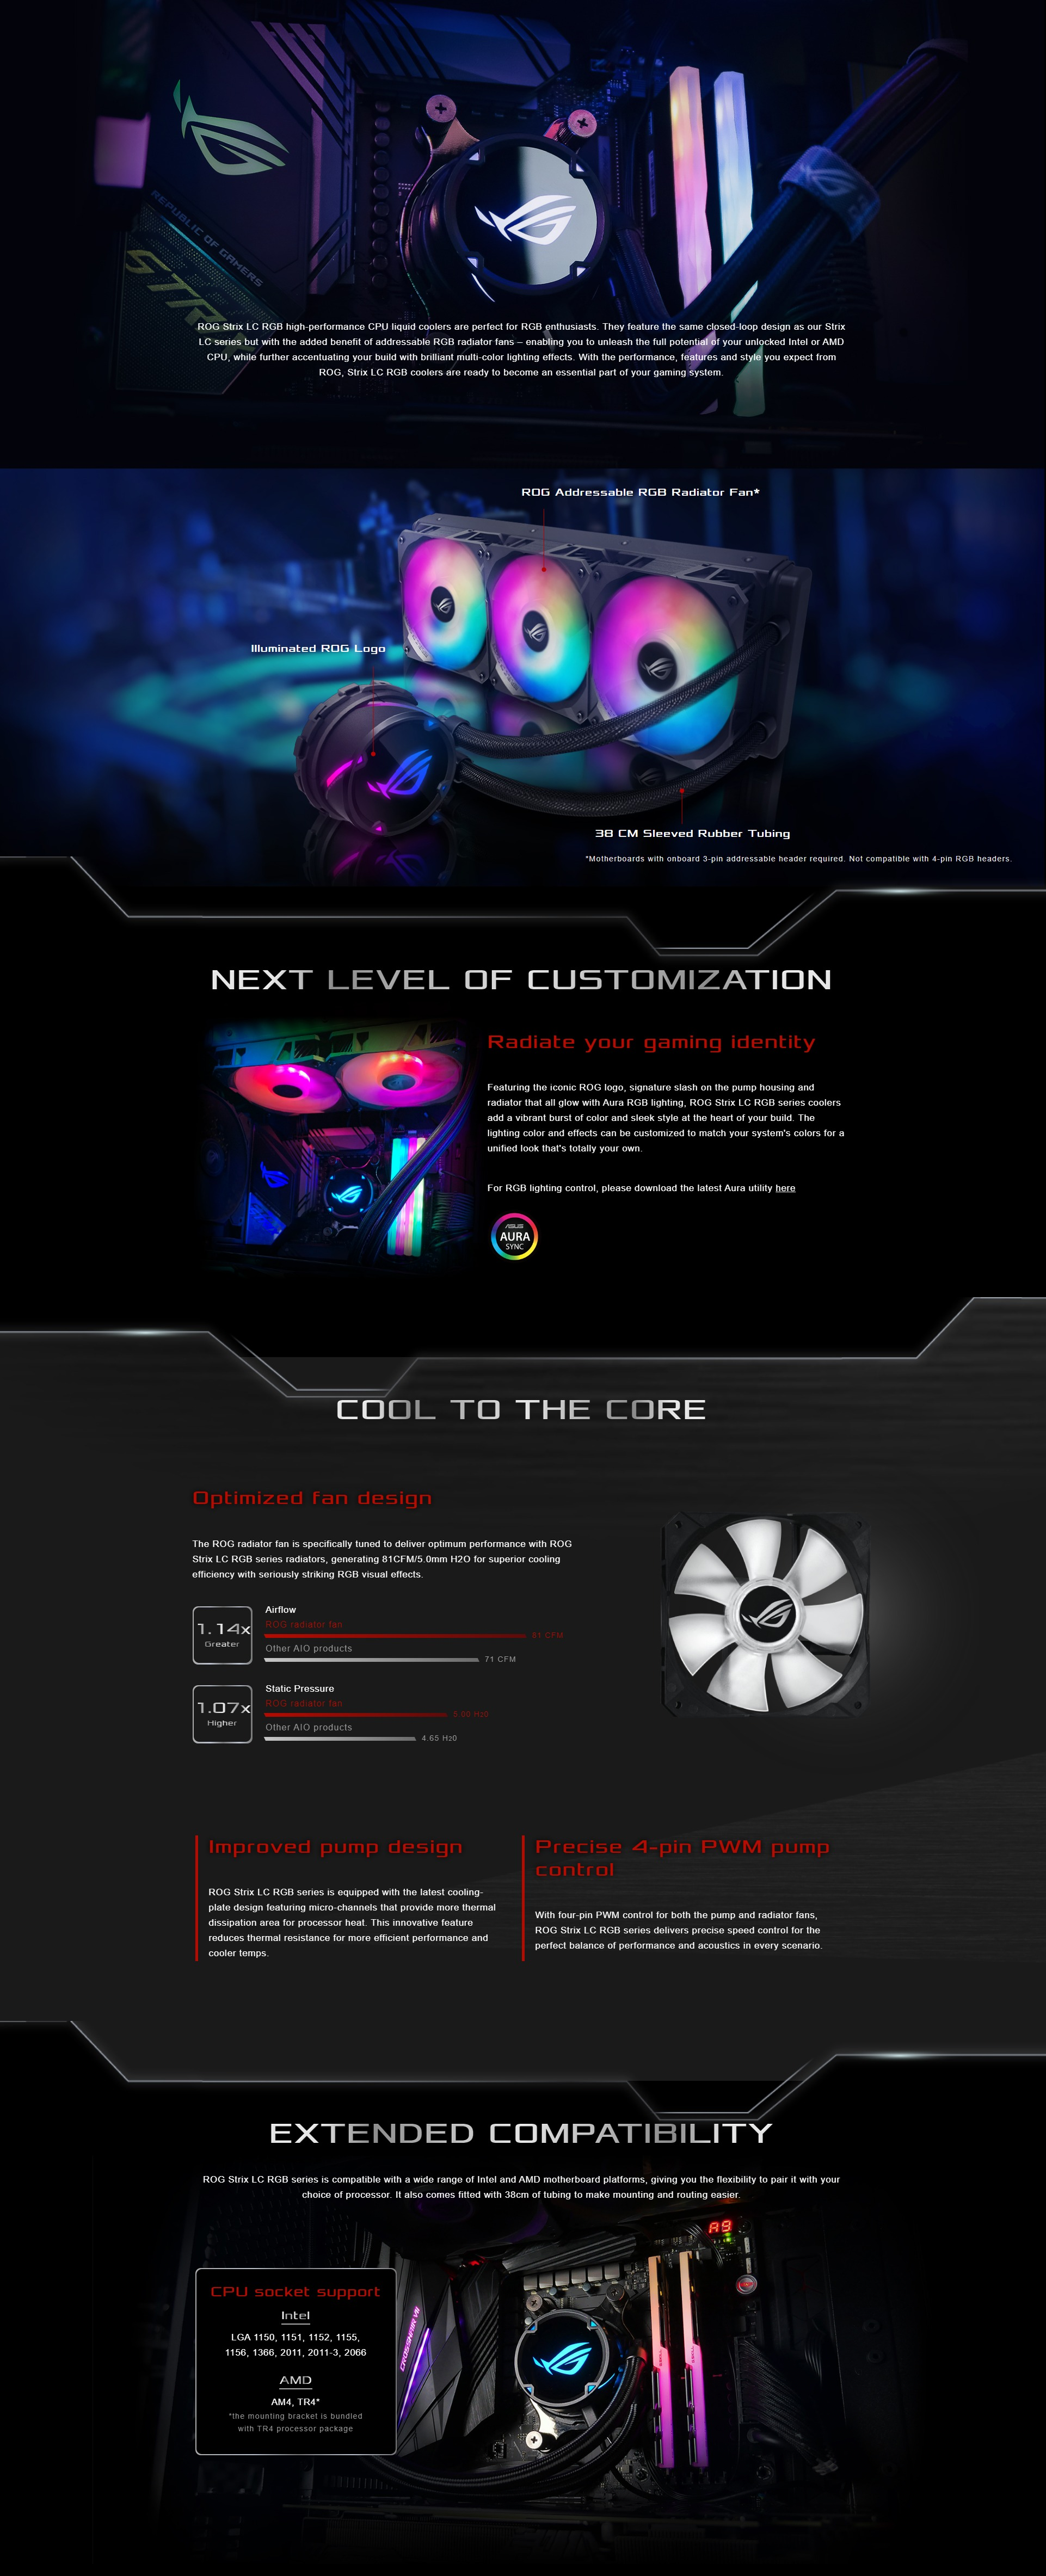 A large marketing image providing additional information about the product ASUS ROG Strix LC 360mm RGB AIO Liquid Cooler - Additional alt info not provided